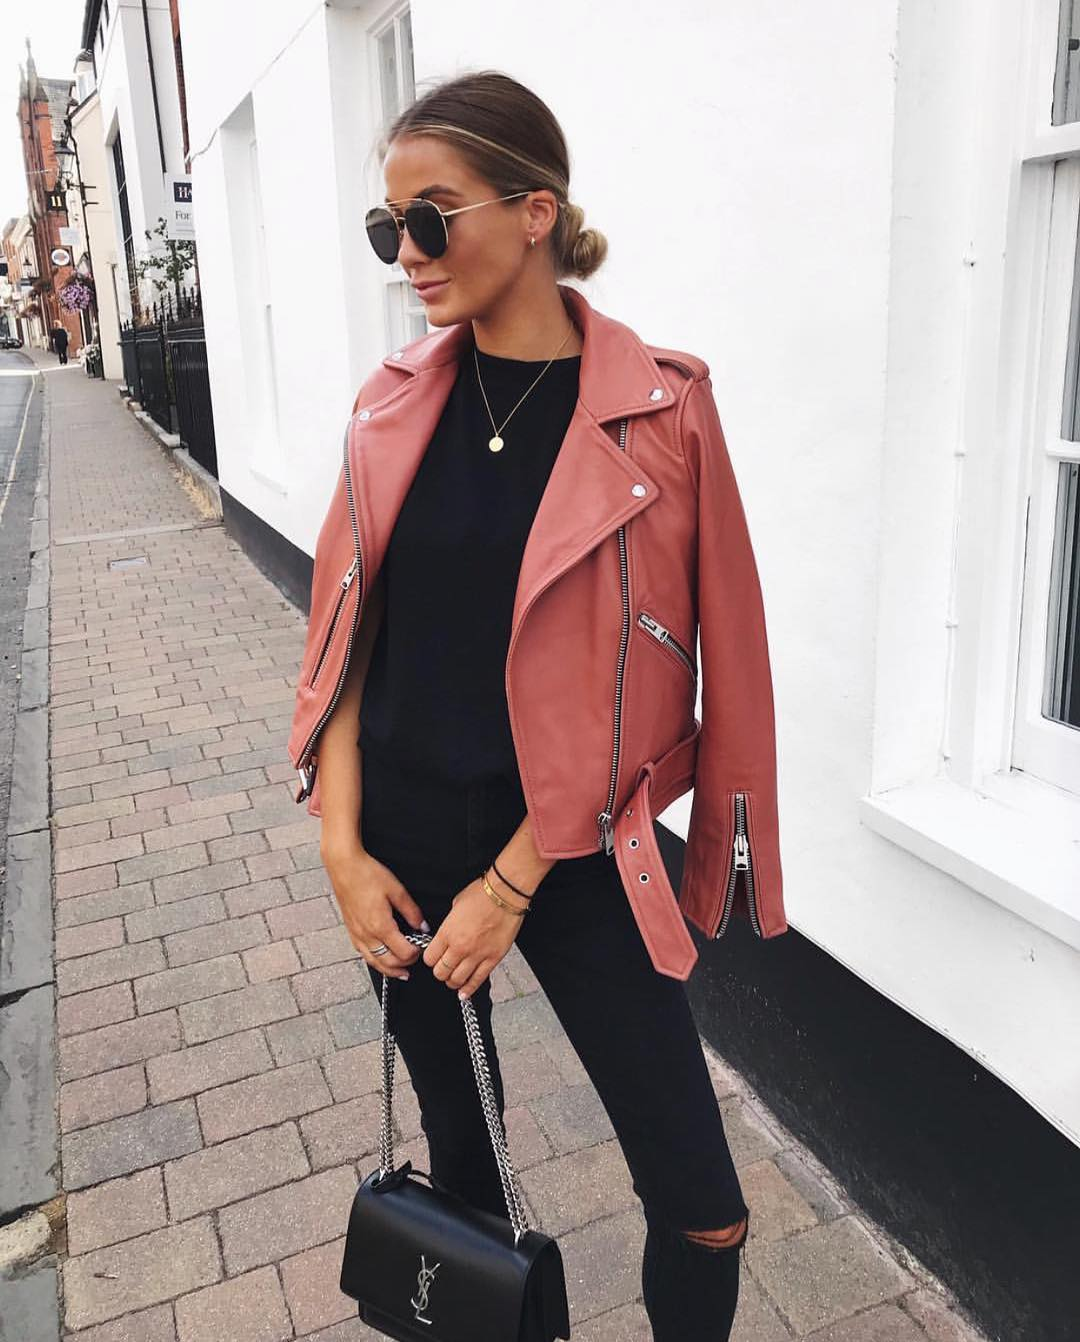 Pink Leather Jacket And All In Black Outfit Idea For Fall 2019